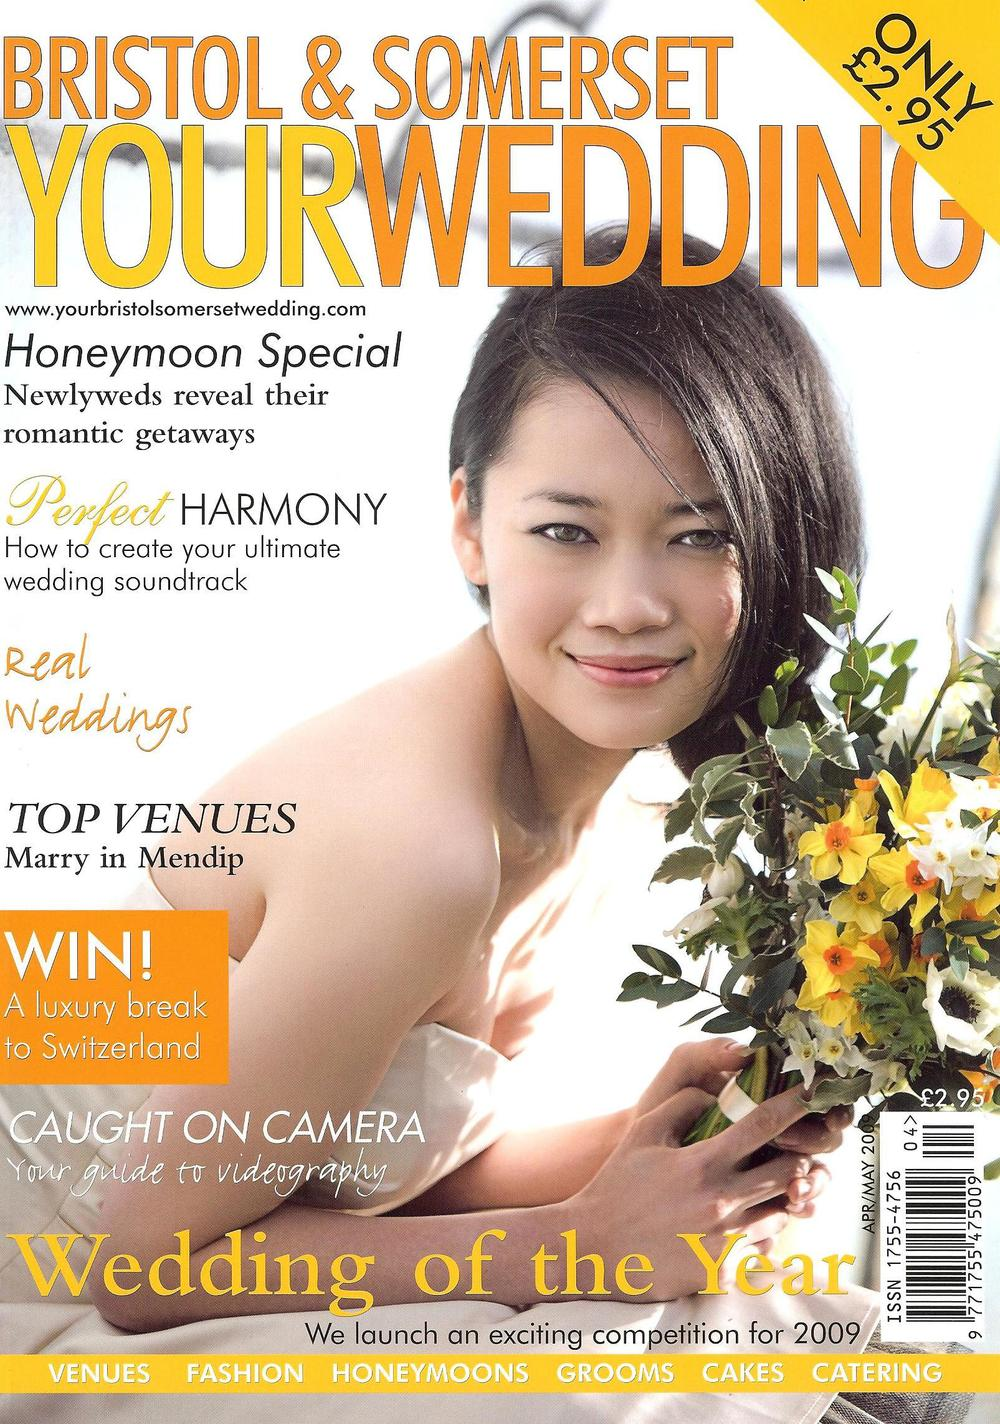 thairapy front page feature - Rosie Parsons photography